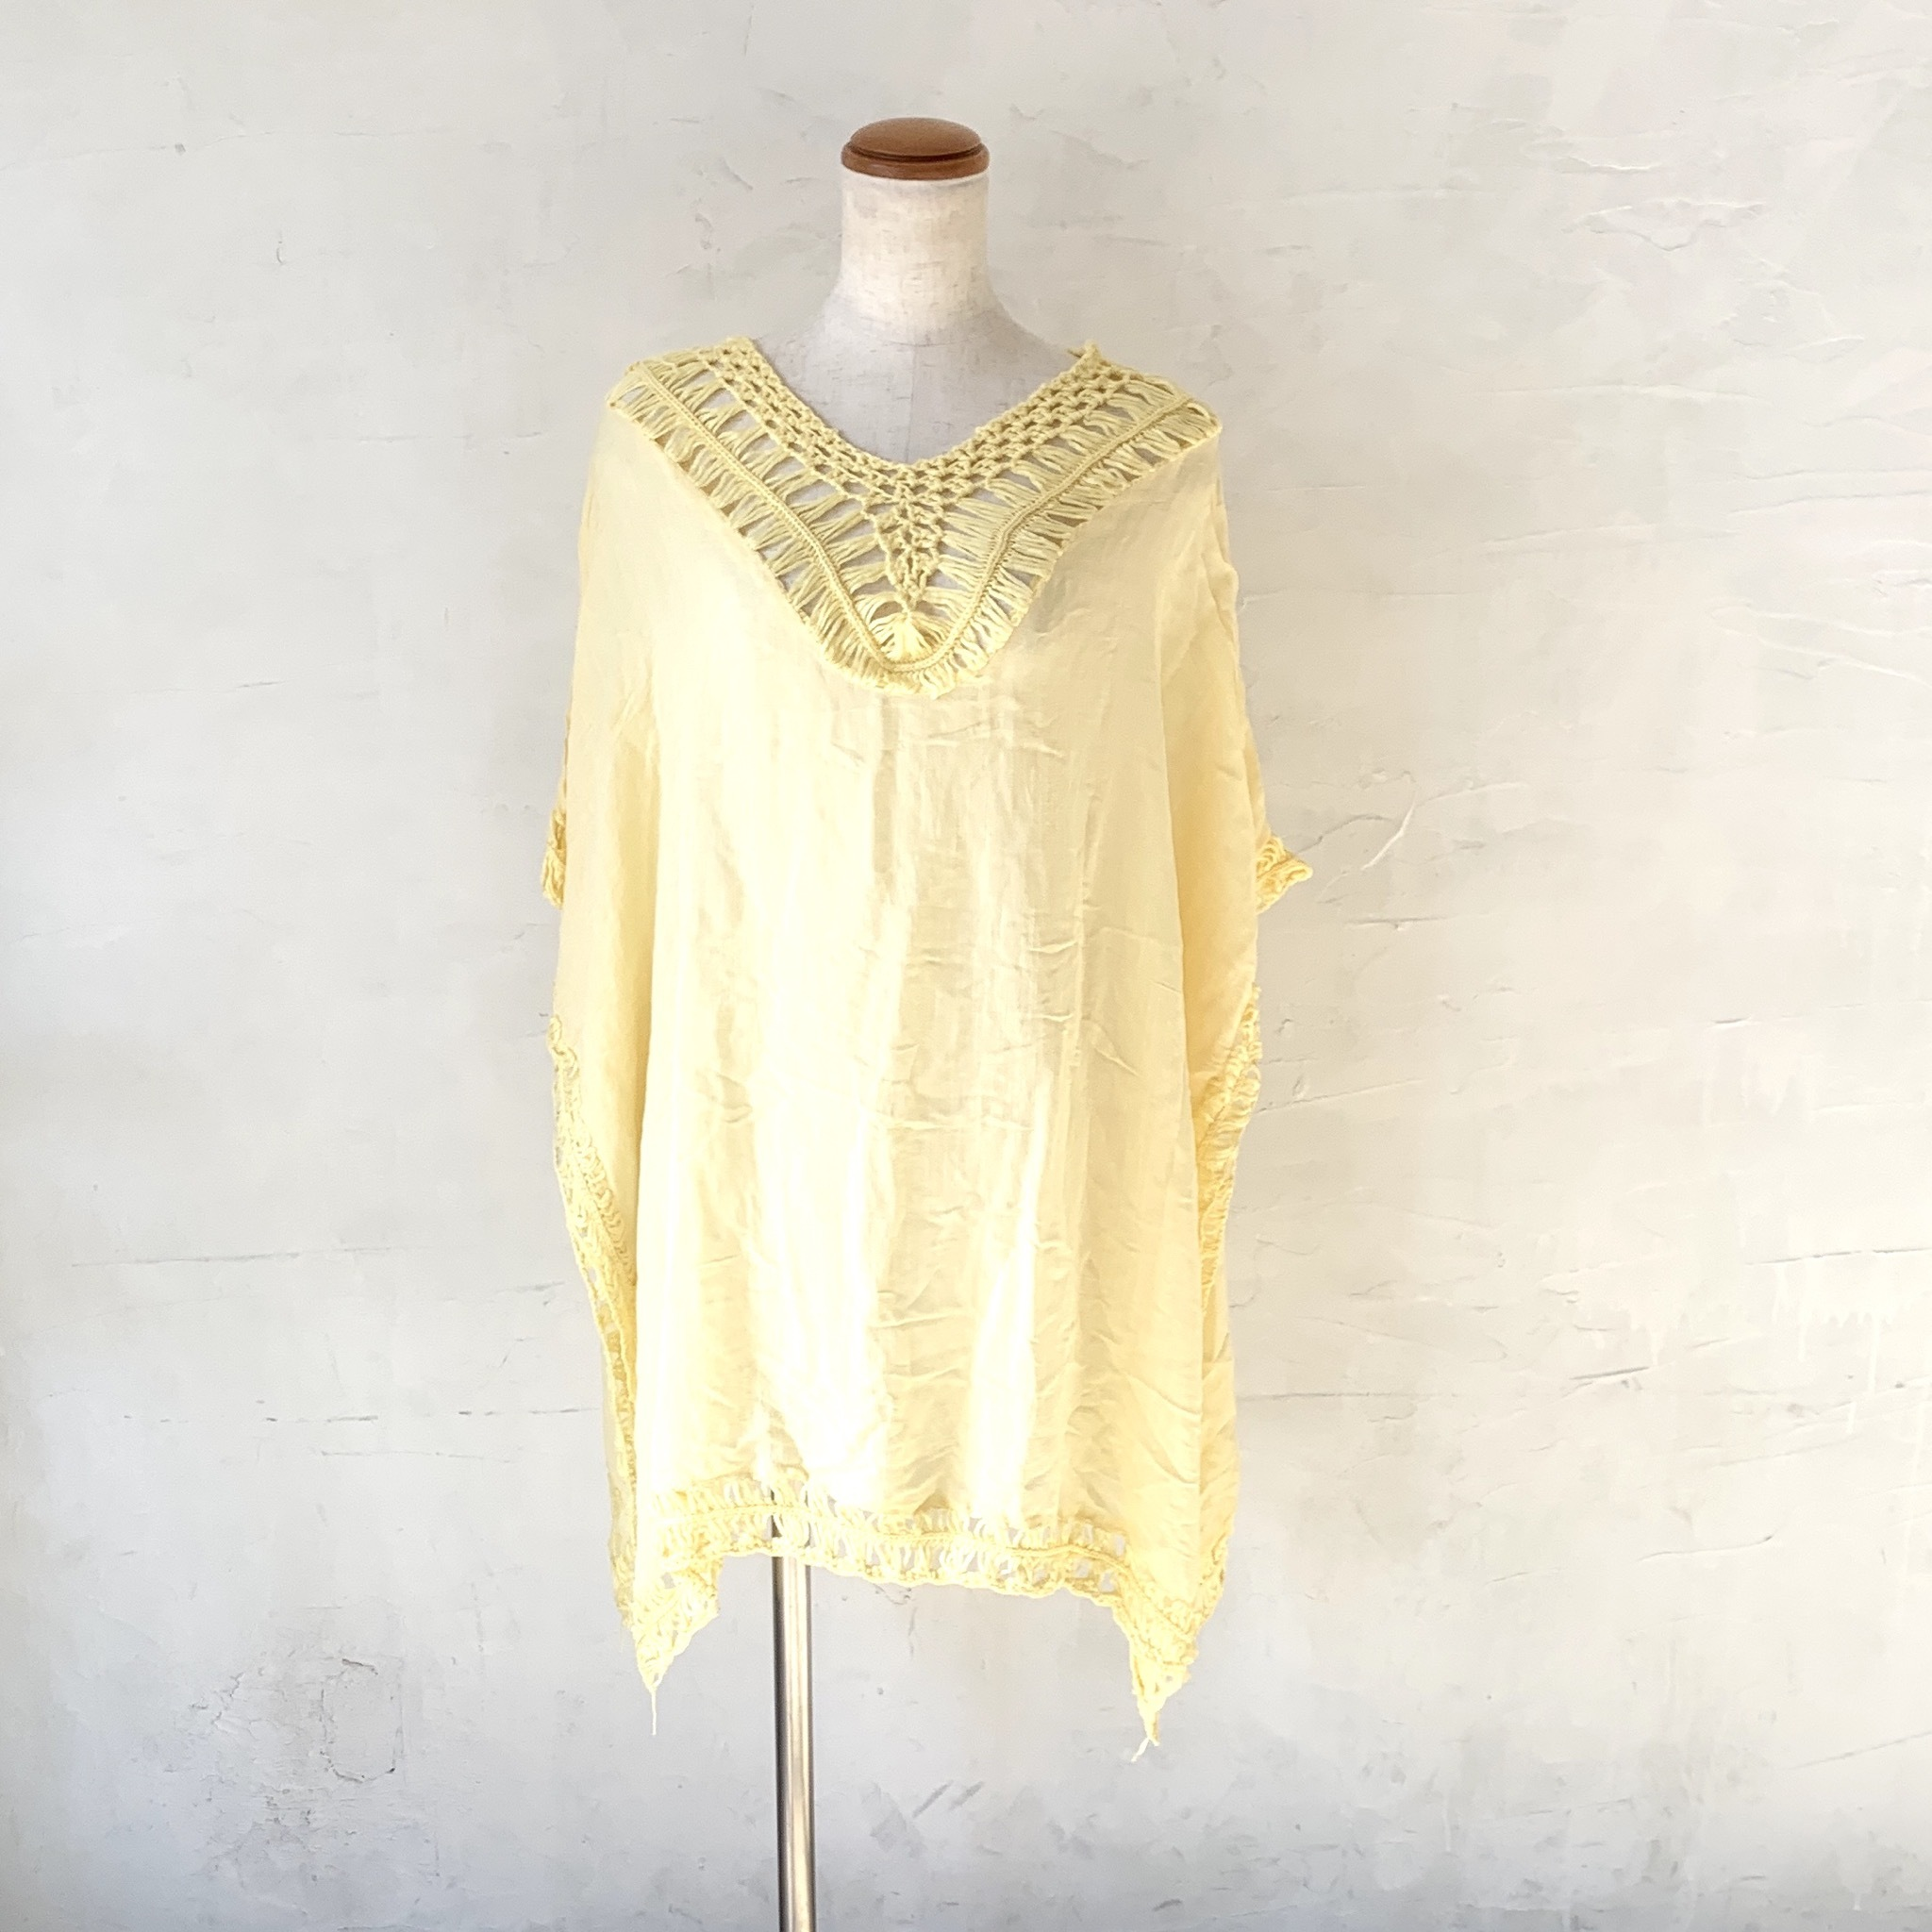 Poncho Top YL